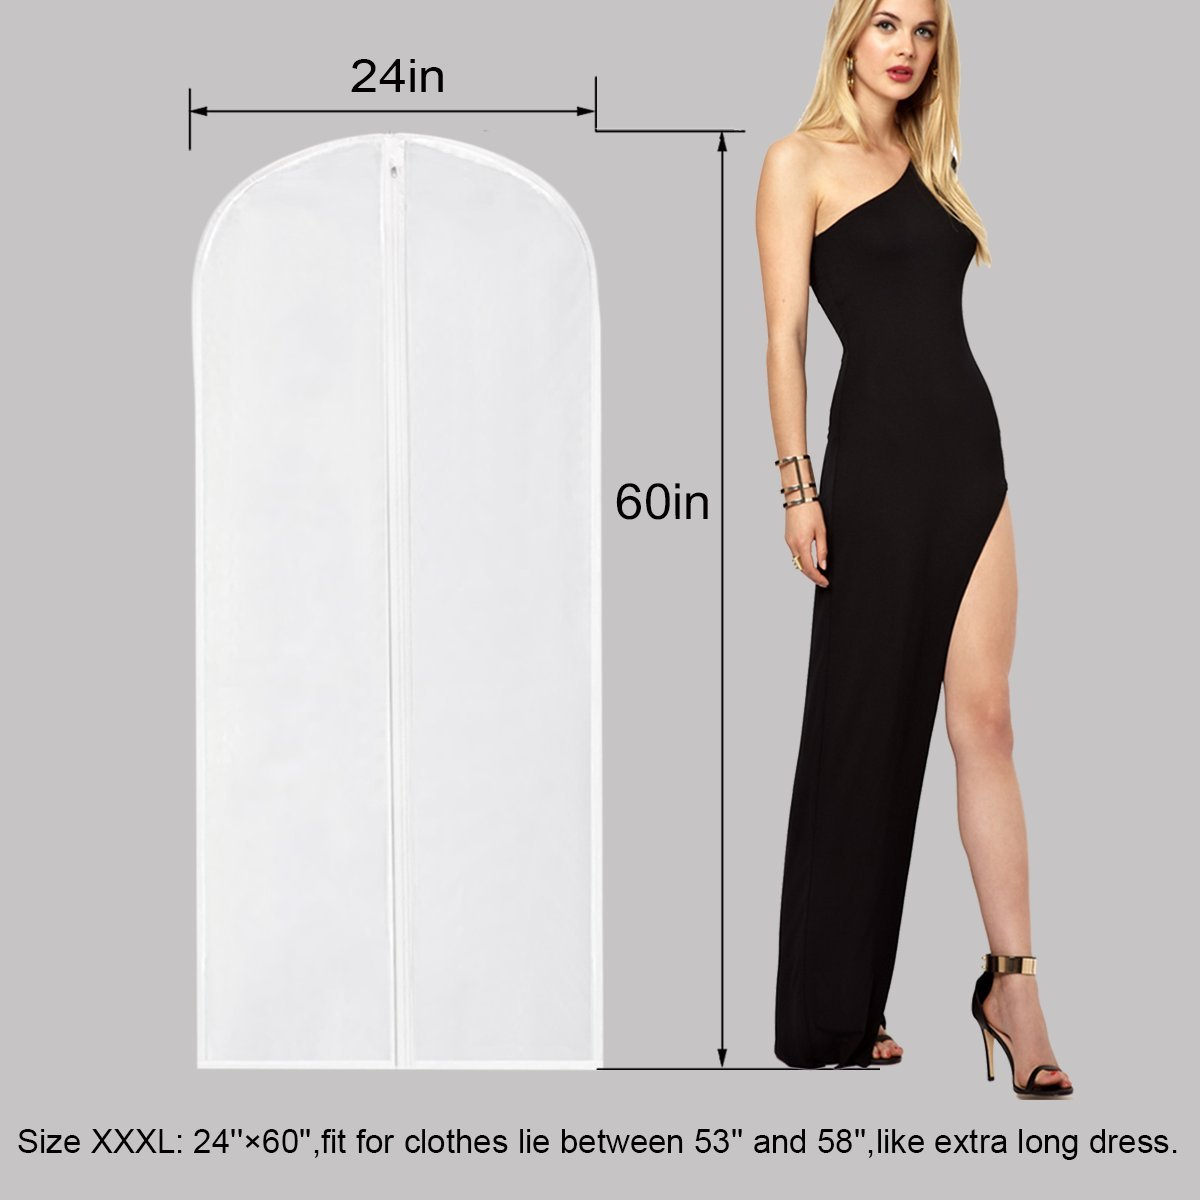 Garment Bag for Long Dress,60 Inch Moth Proof Garment Bag Clear Dust Cover White Breathable Full Zipper For Clothes Storage Closet Pack Of 6 by homeminda (Image #2)